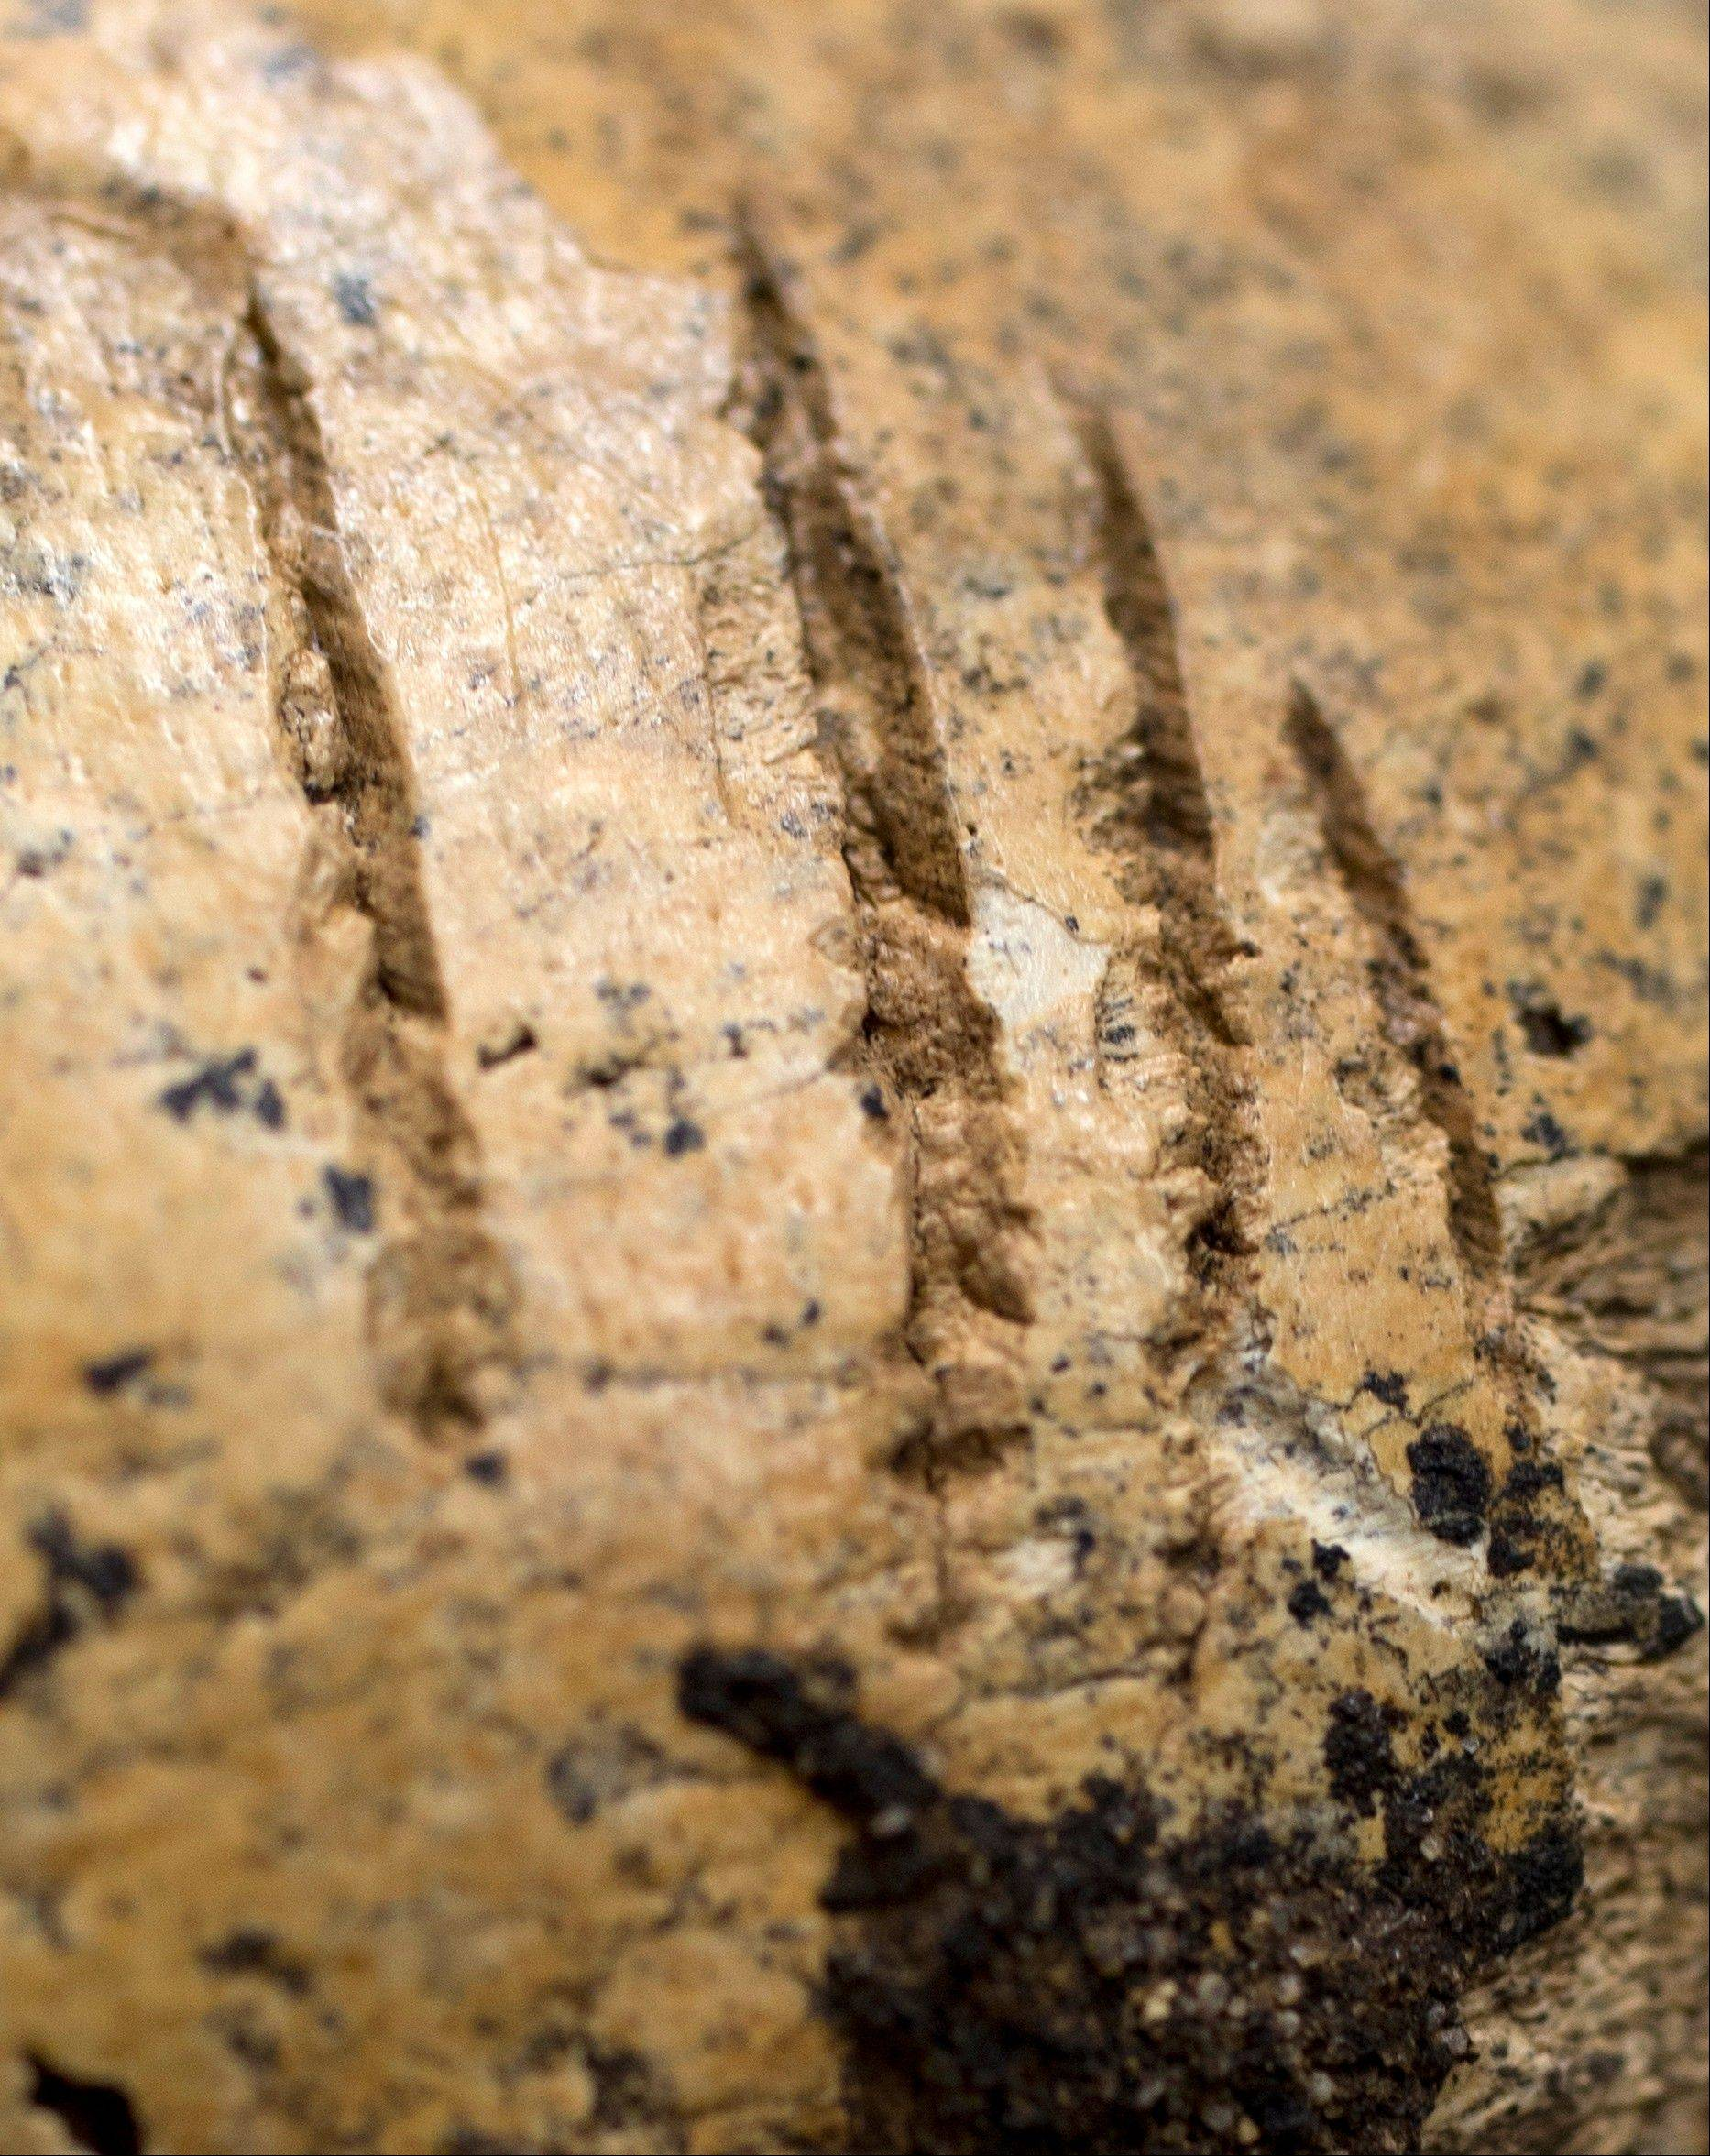 "Strike marks are seen on the skull of ""Jane of Jamestown"" during a news conference at the Smithsonian's National Museum of Natural History in Washington, Wednesday, May 1, 2013. Scientists announced during the news conference that they have found the first solid archaeological evidence that some of the earliest American colonists at Jamestown, Va., survived harsh conditions by turning to cannibalism presenting the discovery of the bones of a 14-year-old girl, ""Jane"" that show clear signs that she was cannibalized."